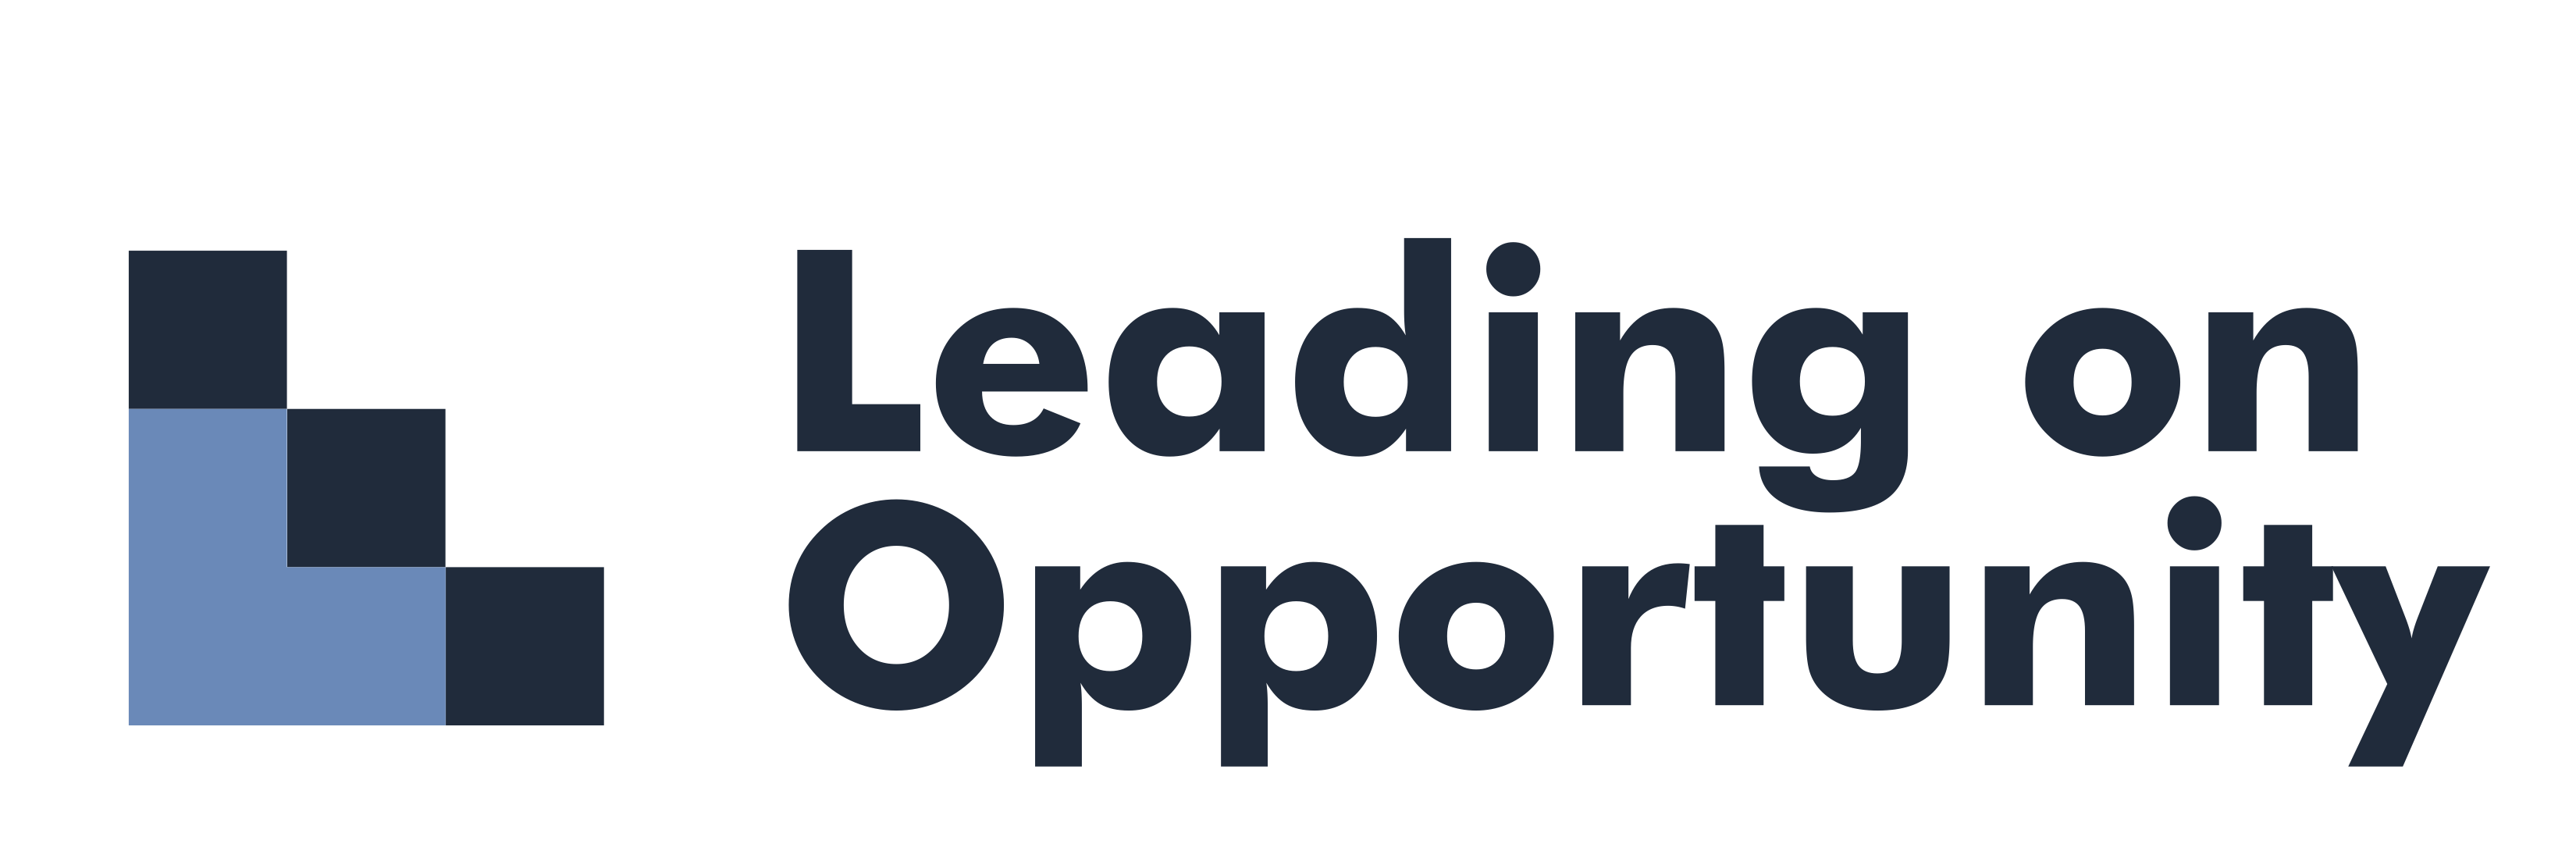 Leading on Opportunity logo